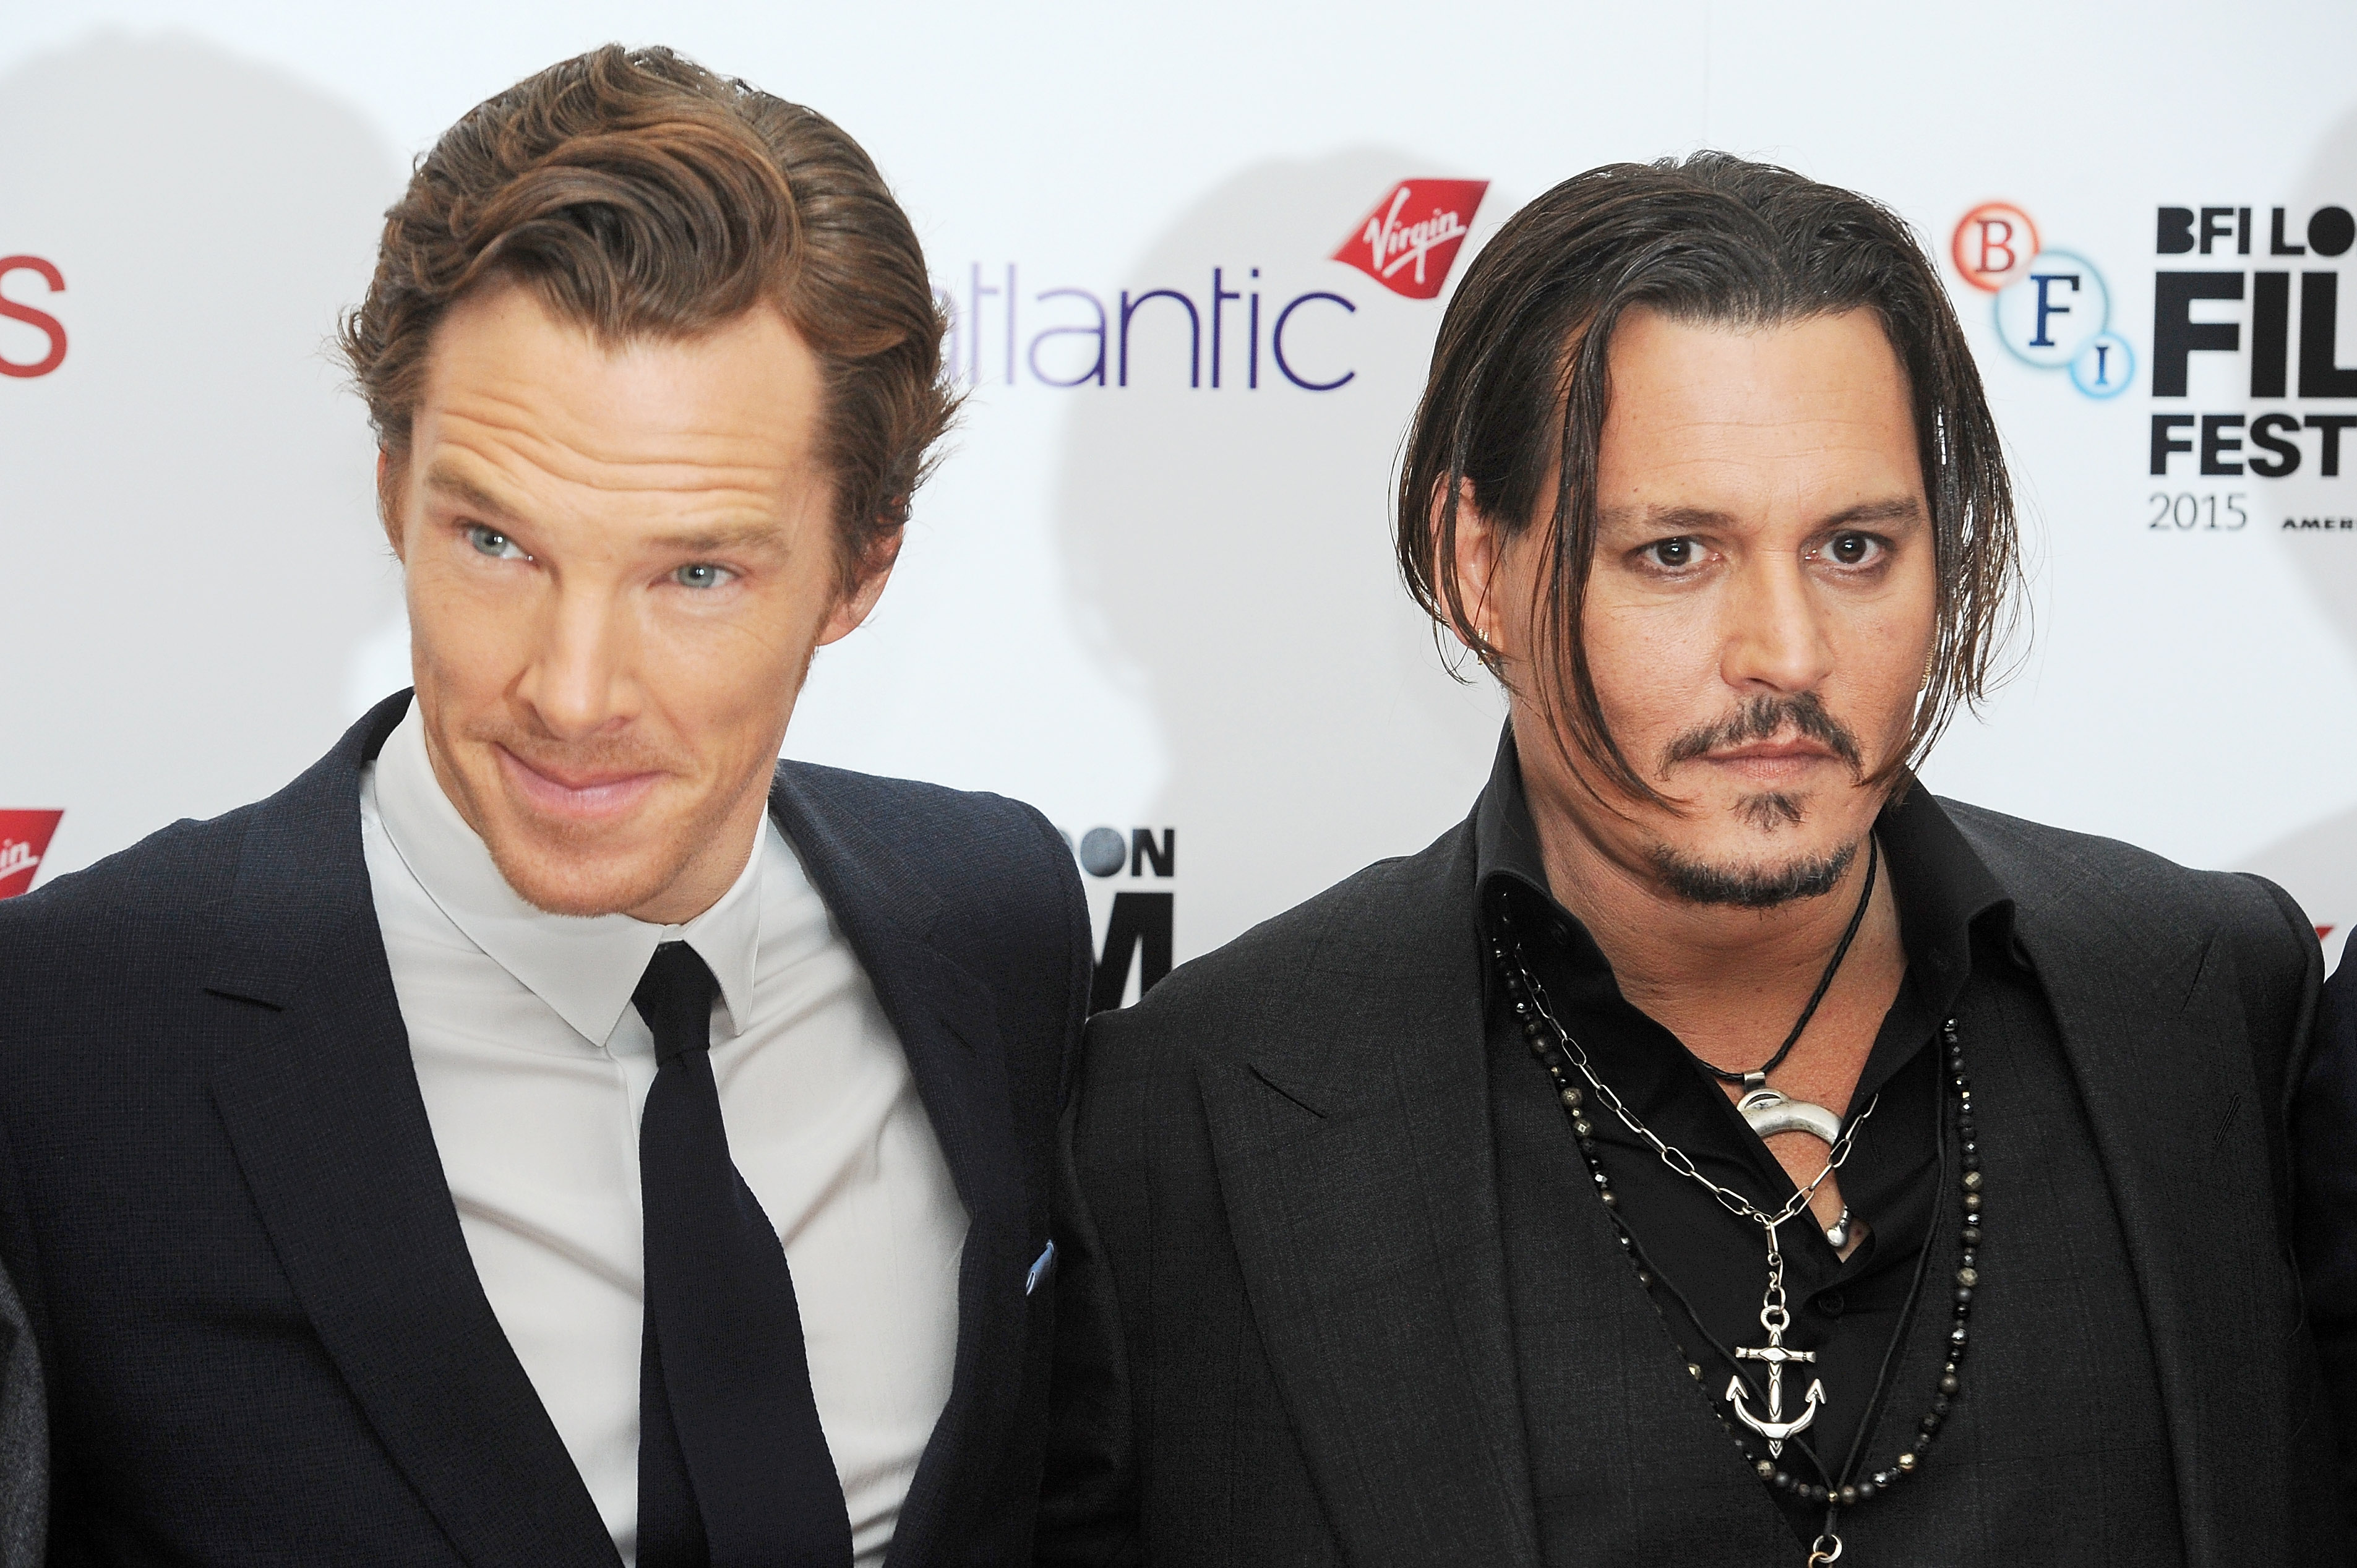 Benedict Cumberbatch and Johnny Depp attend the Virgin Atlantic Gala screening of  Black Mass  in London on Oct. 11, 2015.